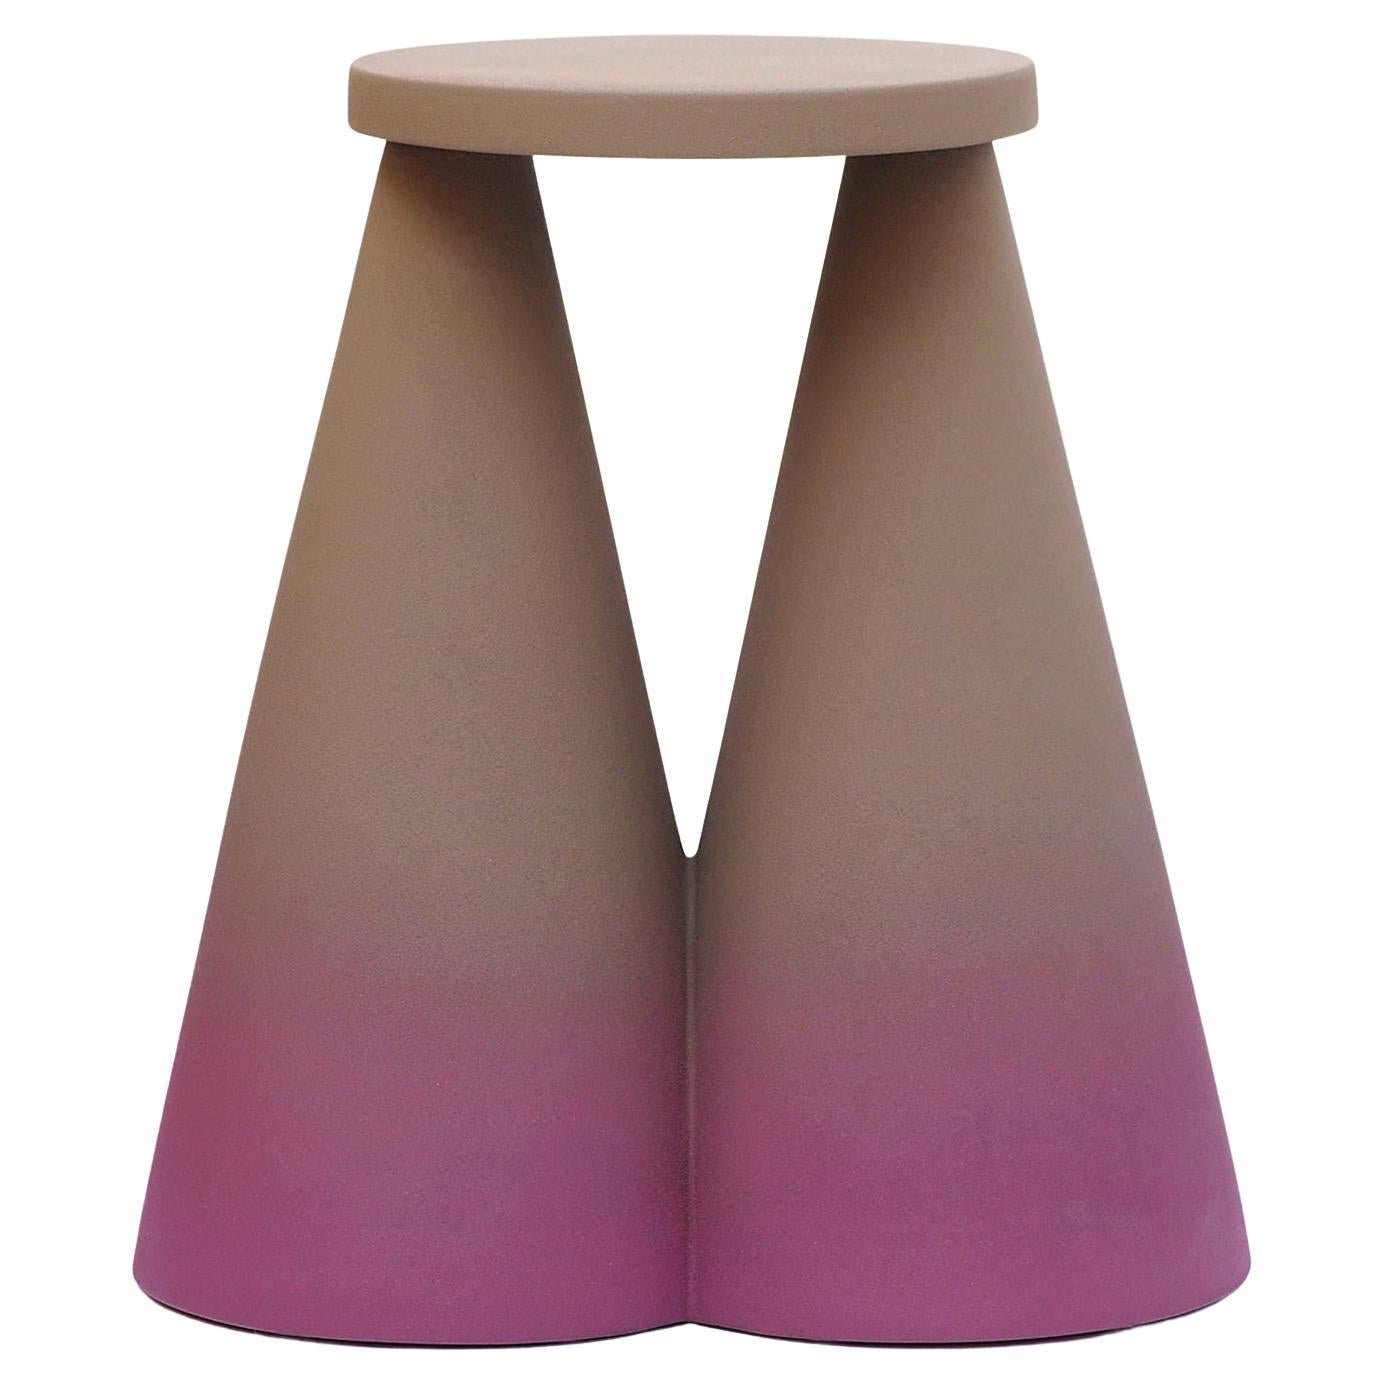 Contemporary Isola Purple Coffee Table in Ceramic by Cara\Davide for Portego